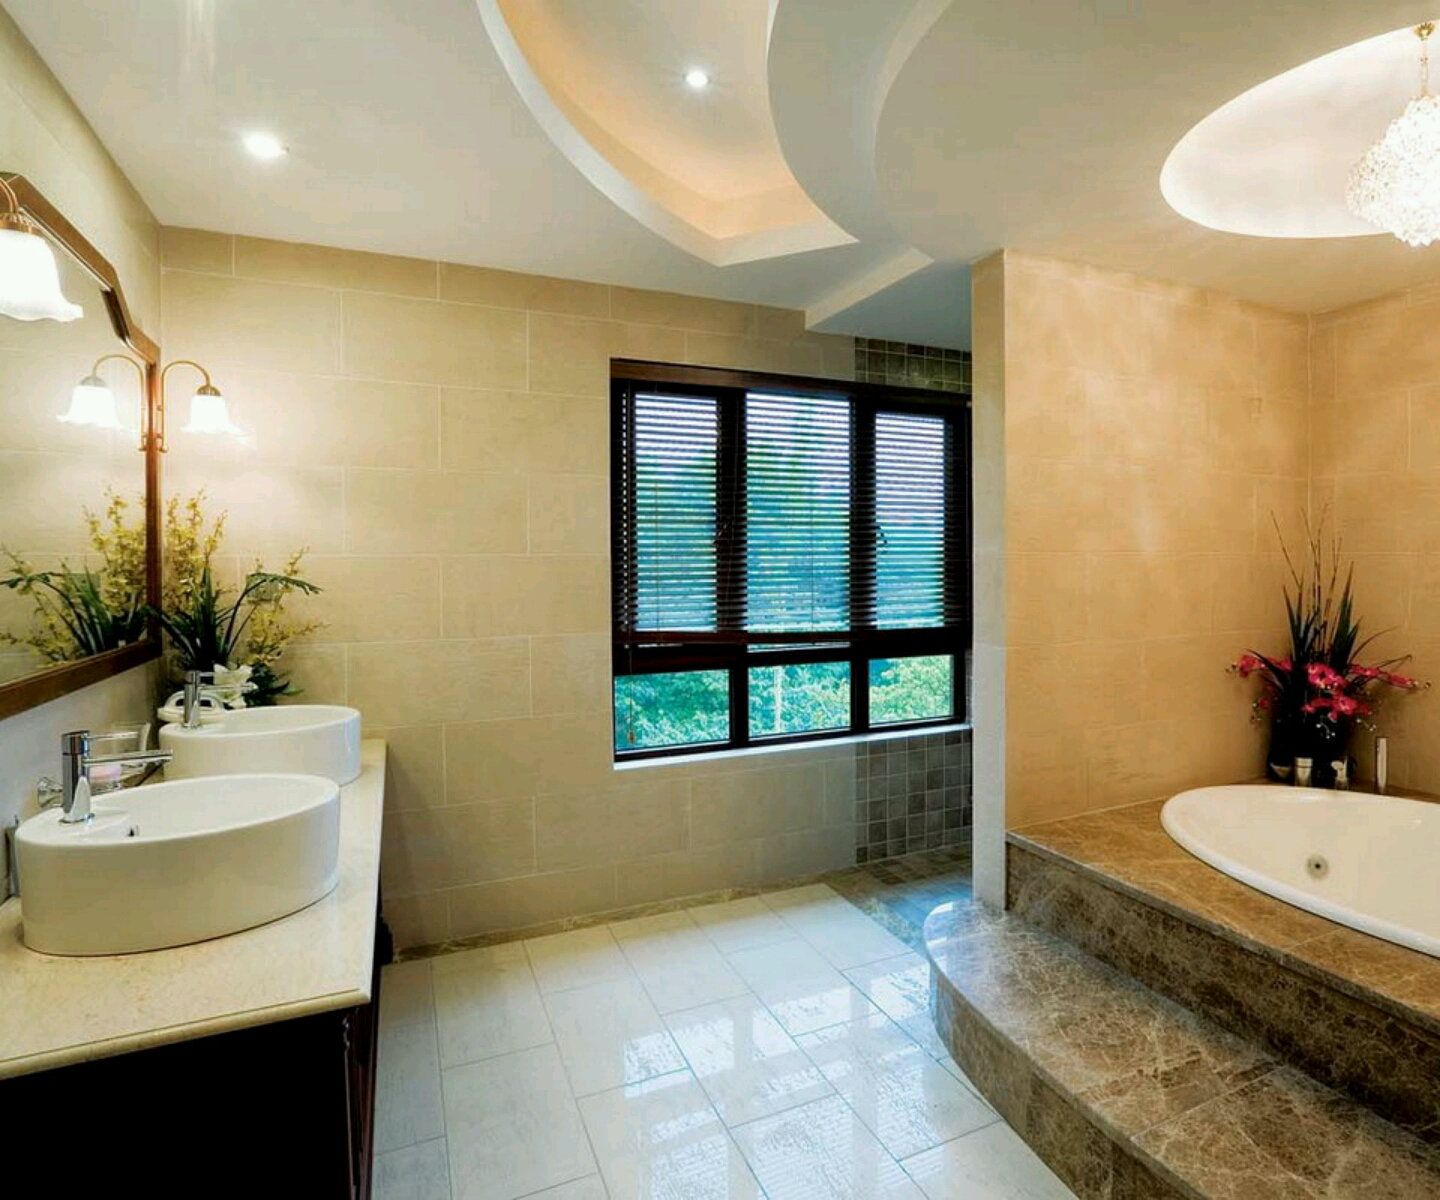 New home designs latest ultra modern washroom designs ideas for Washroom ideas